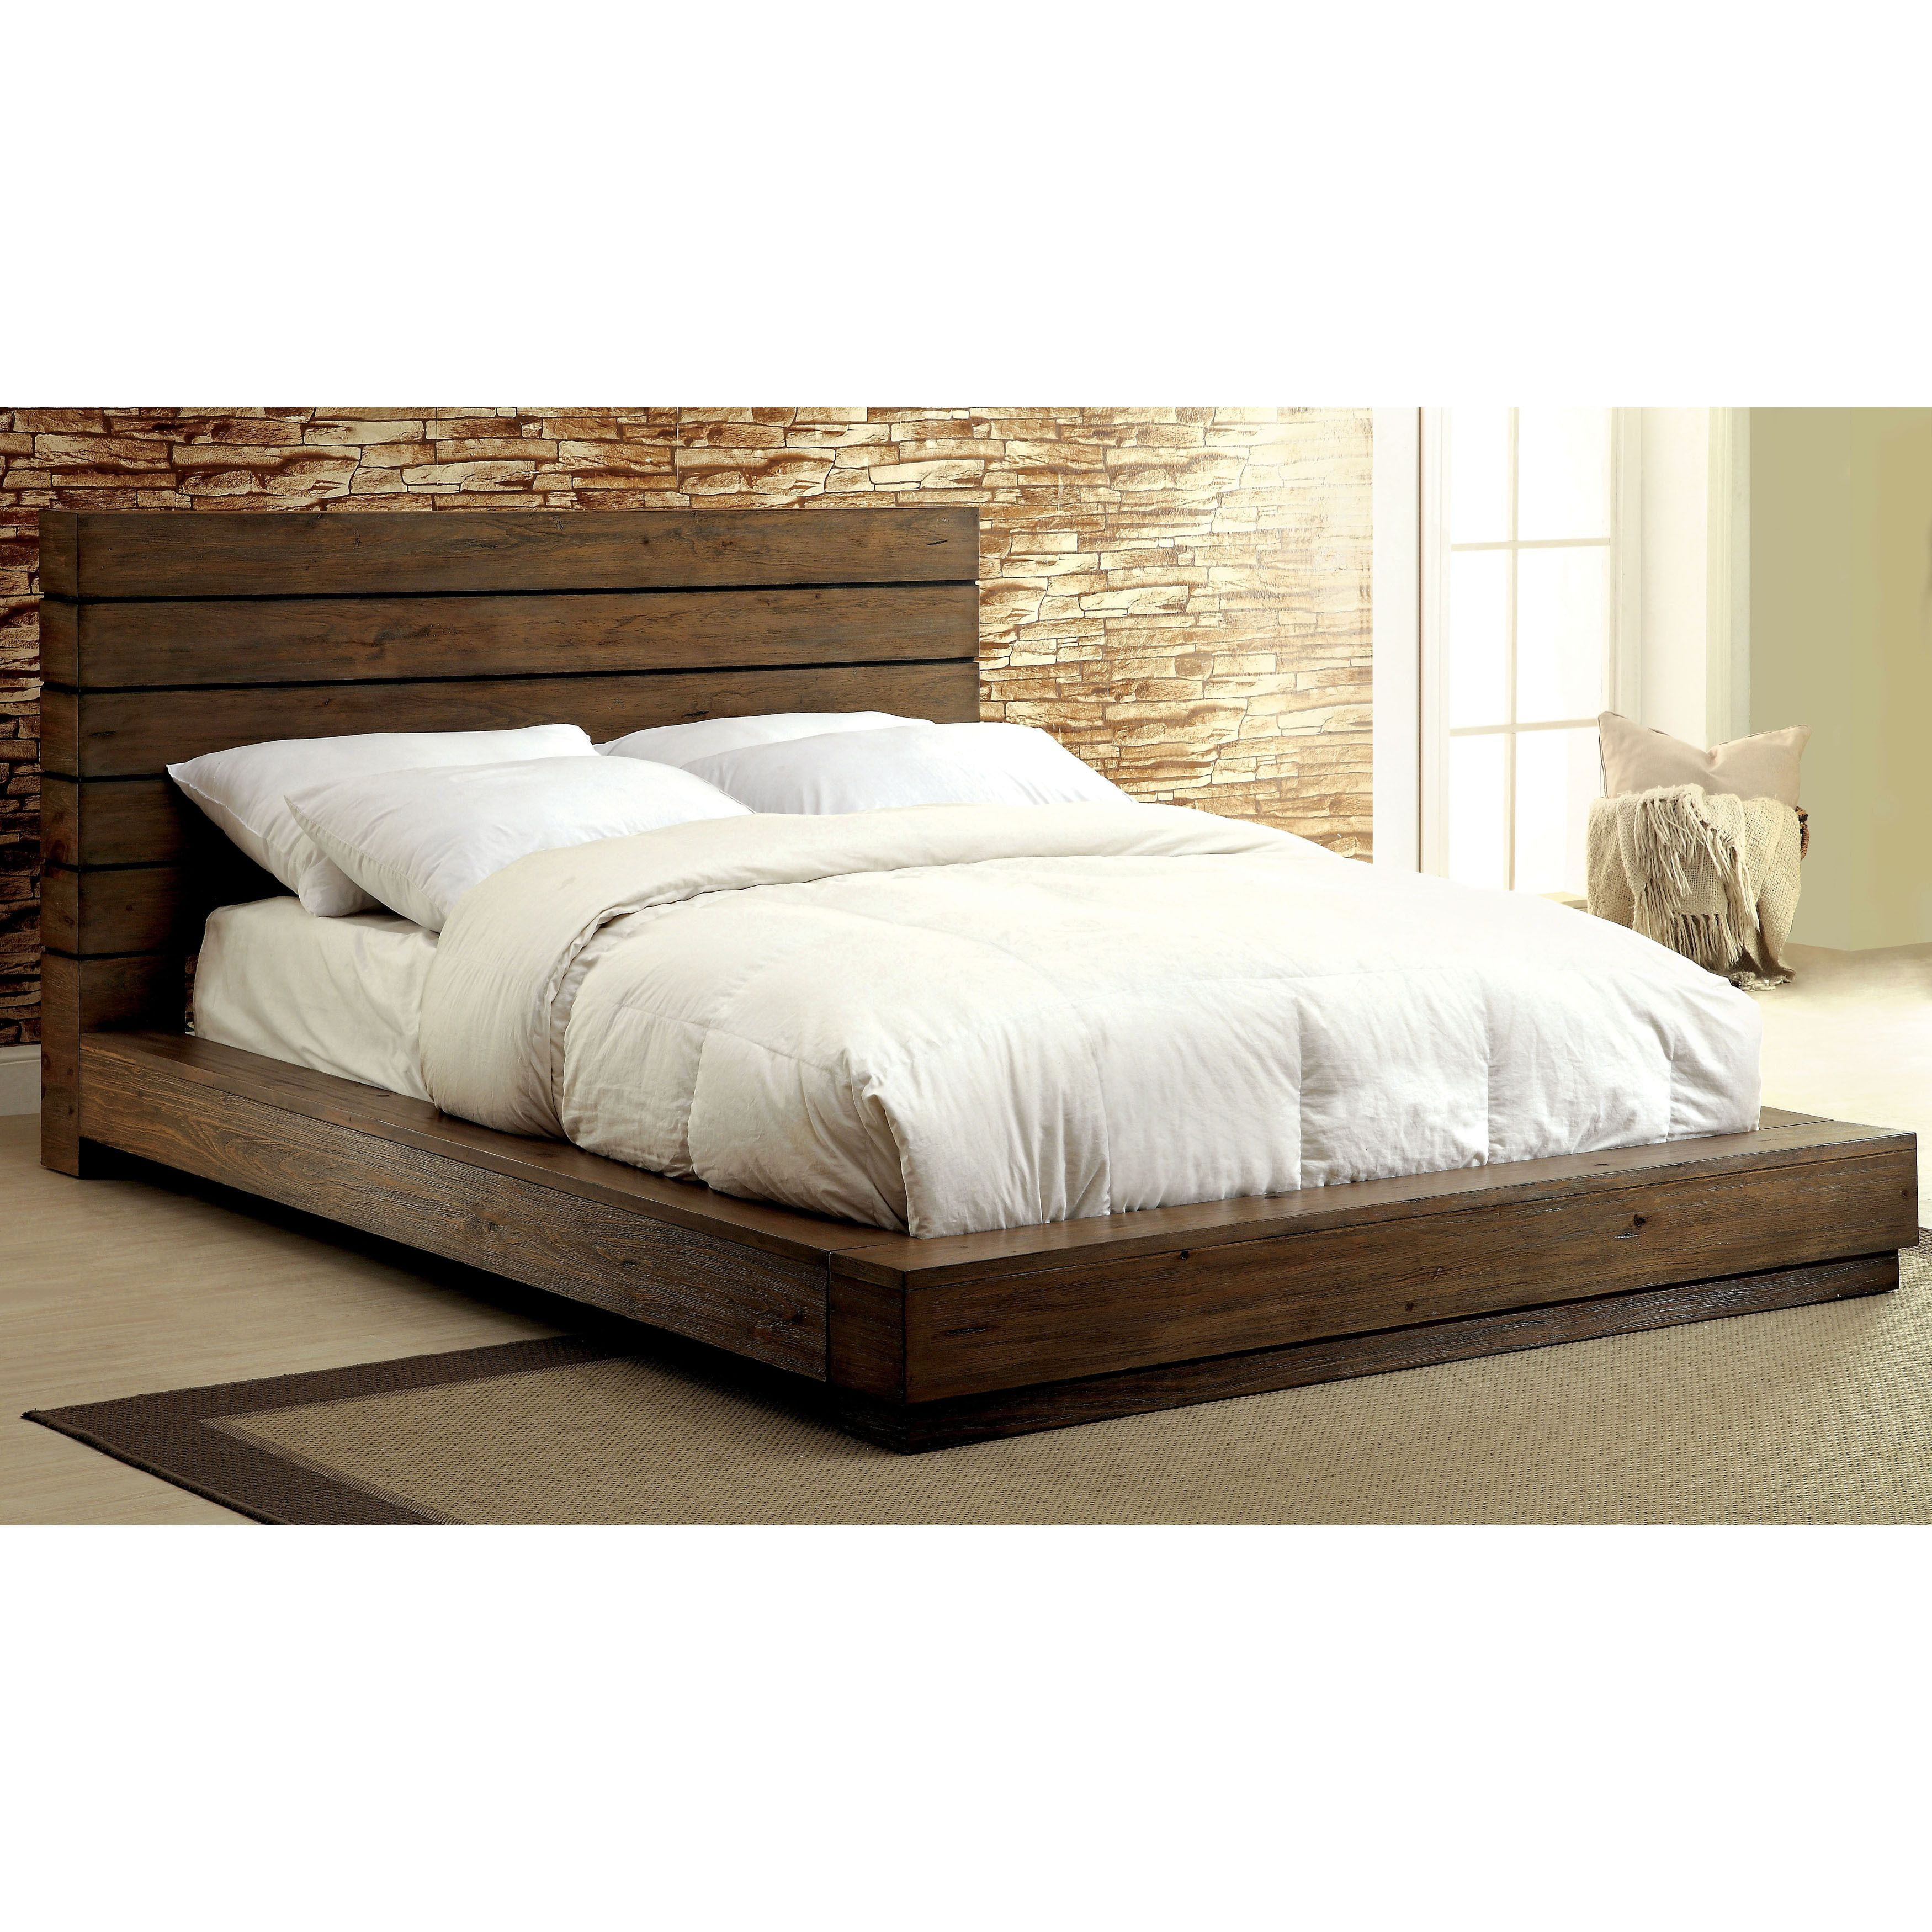 Furniture of America Emallson Rustic Natural Low Profile Bed